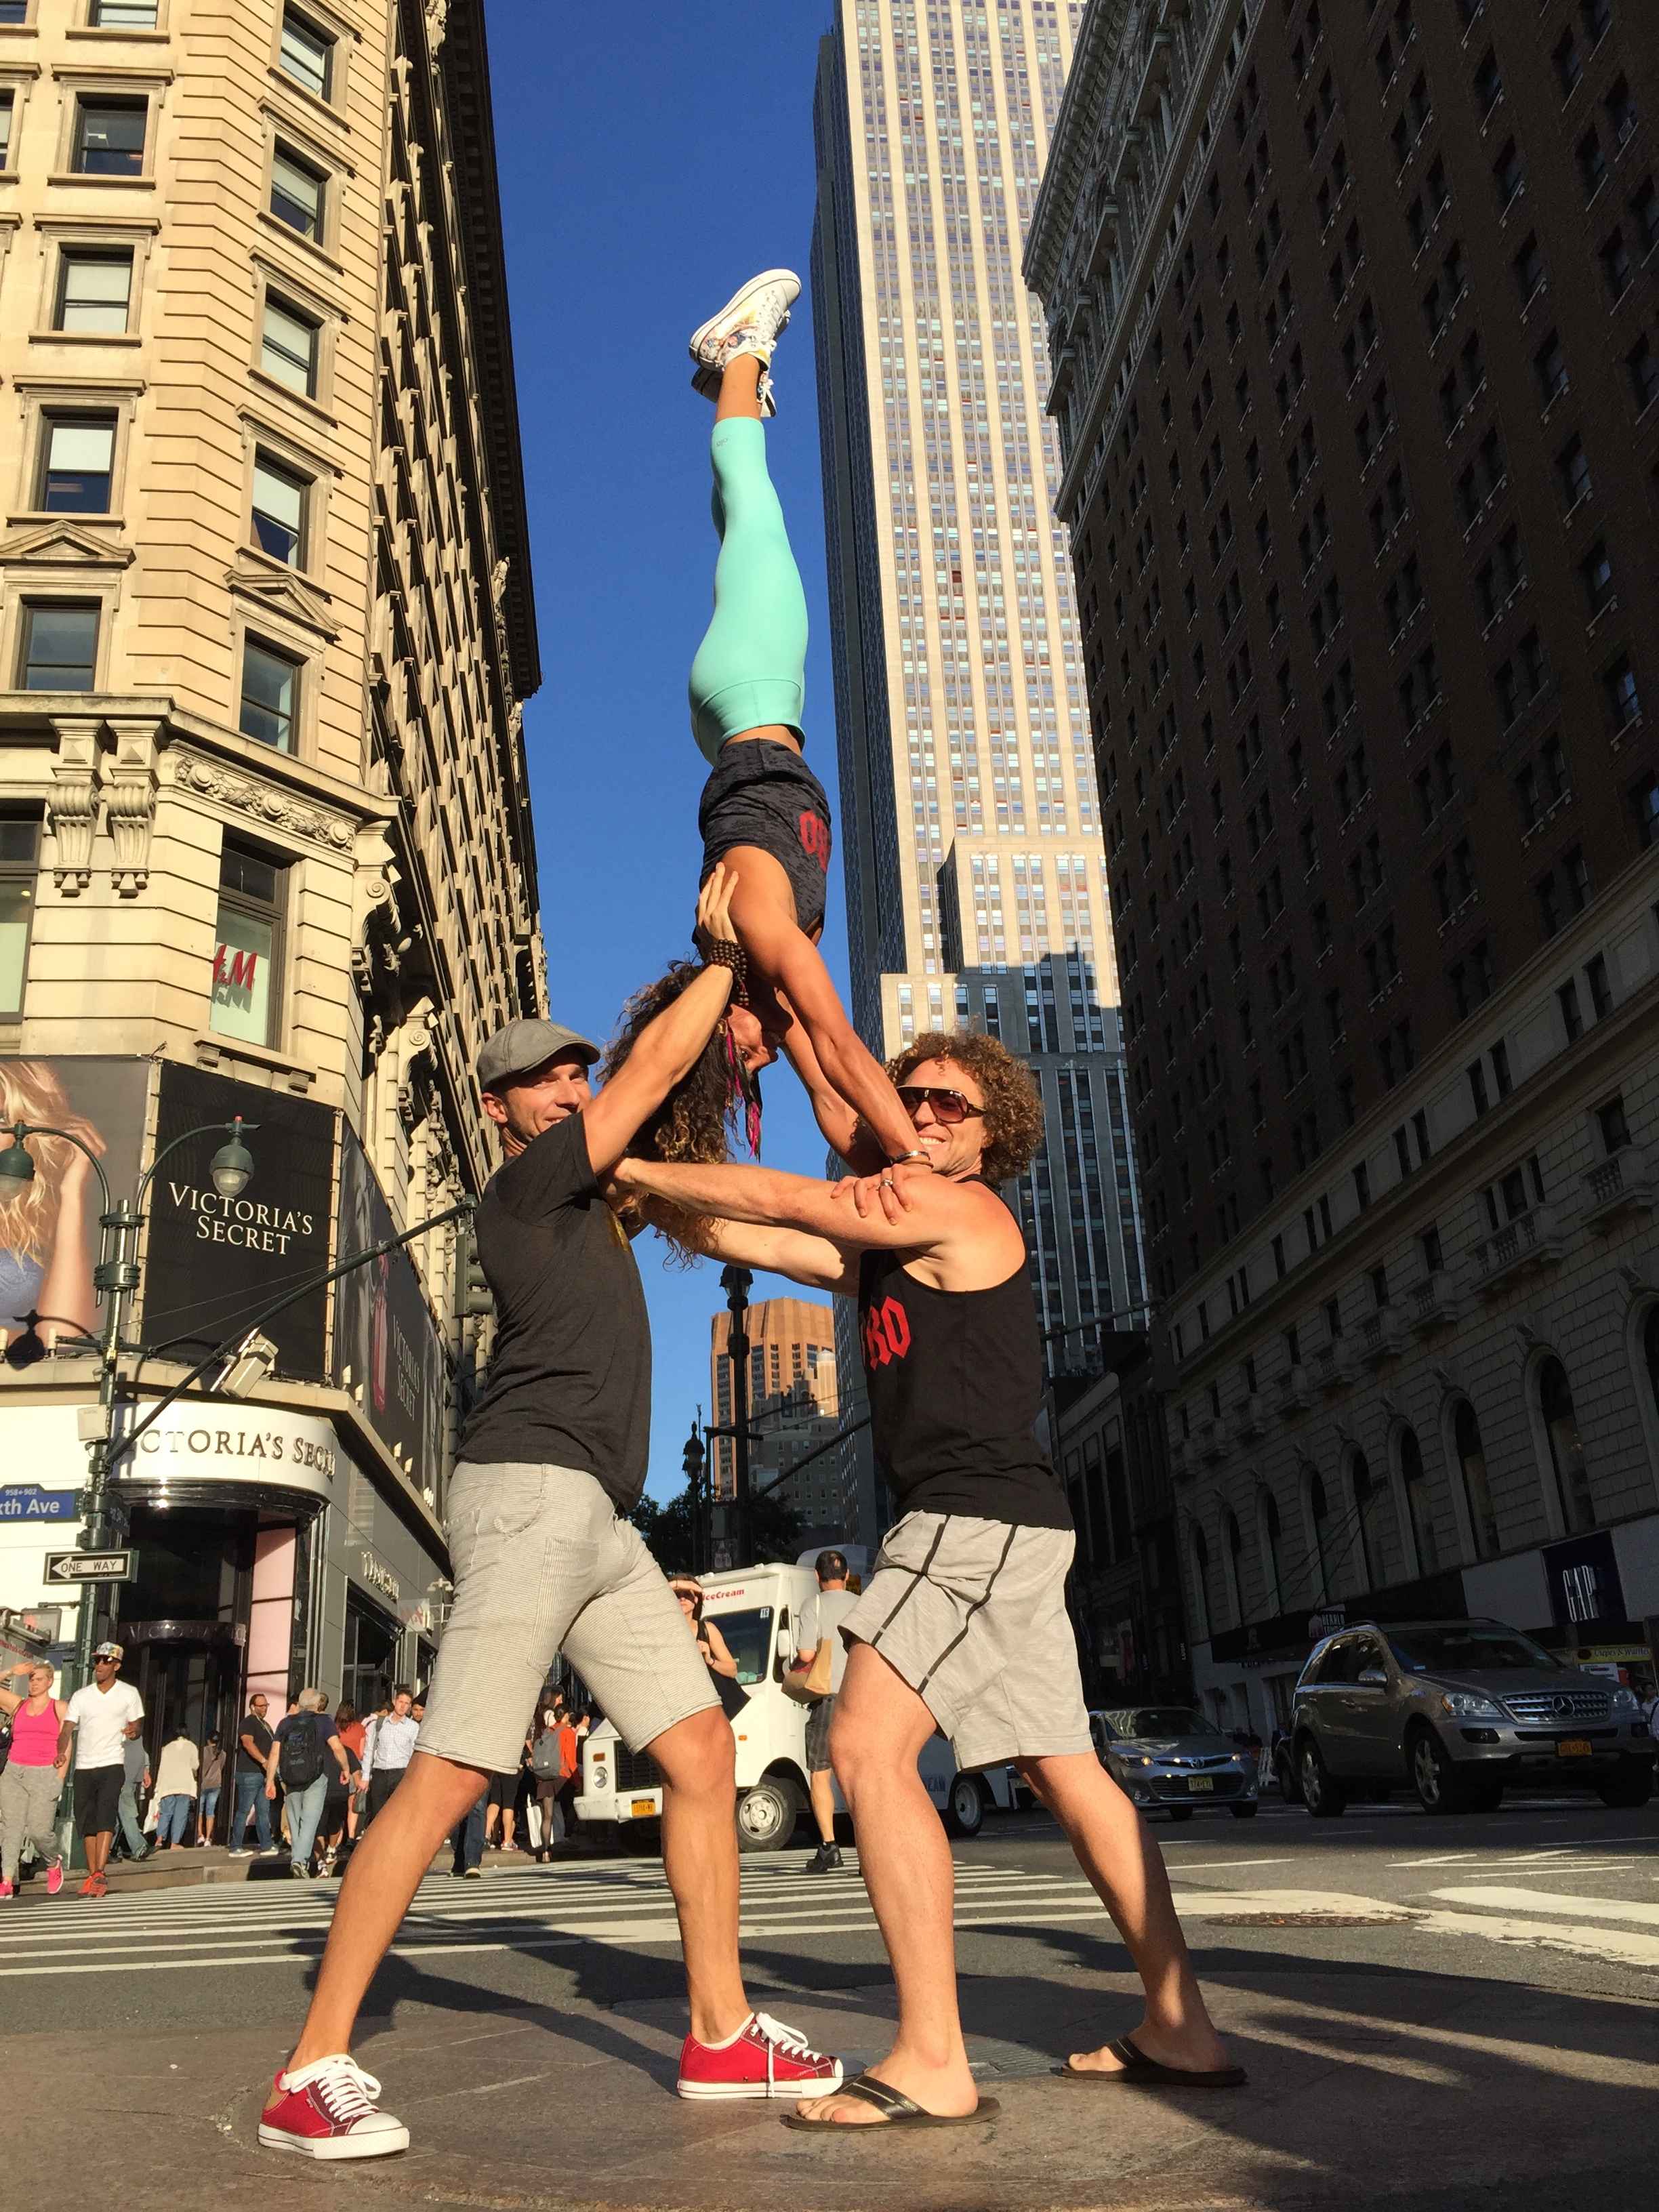 AcroYoga in the Street